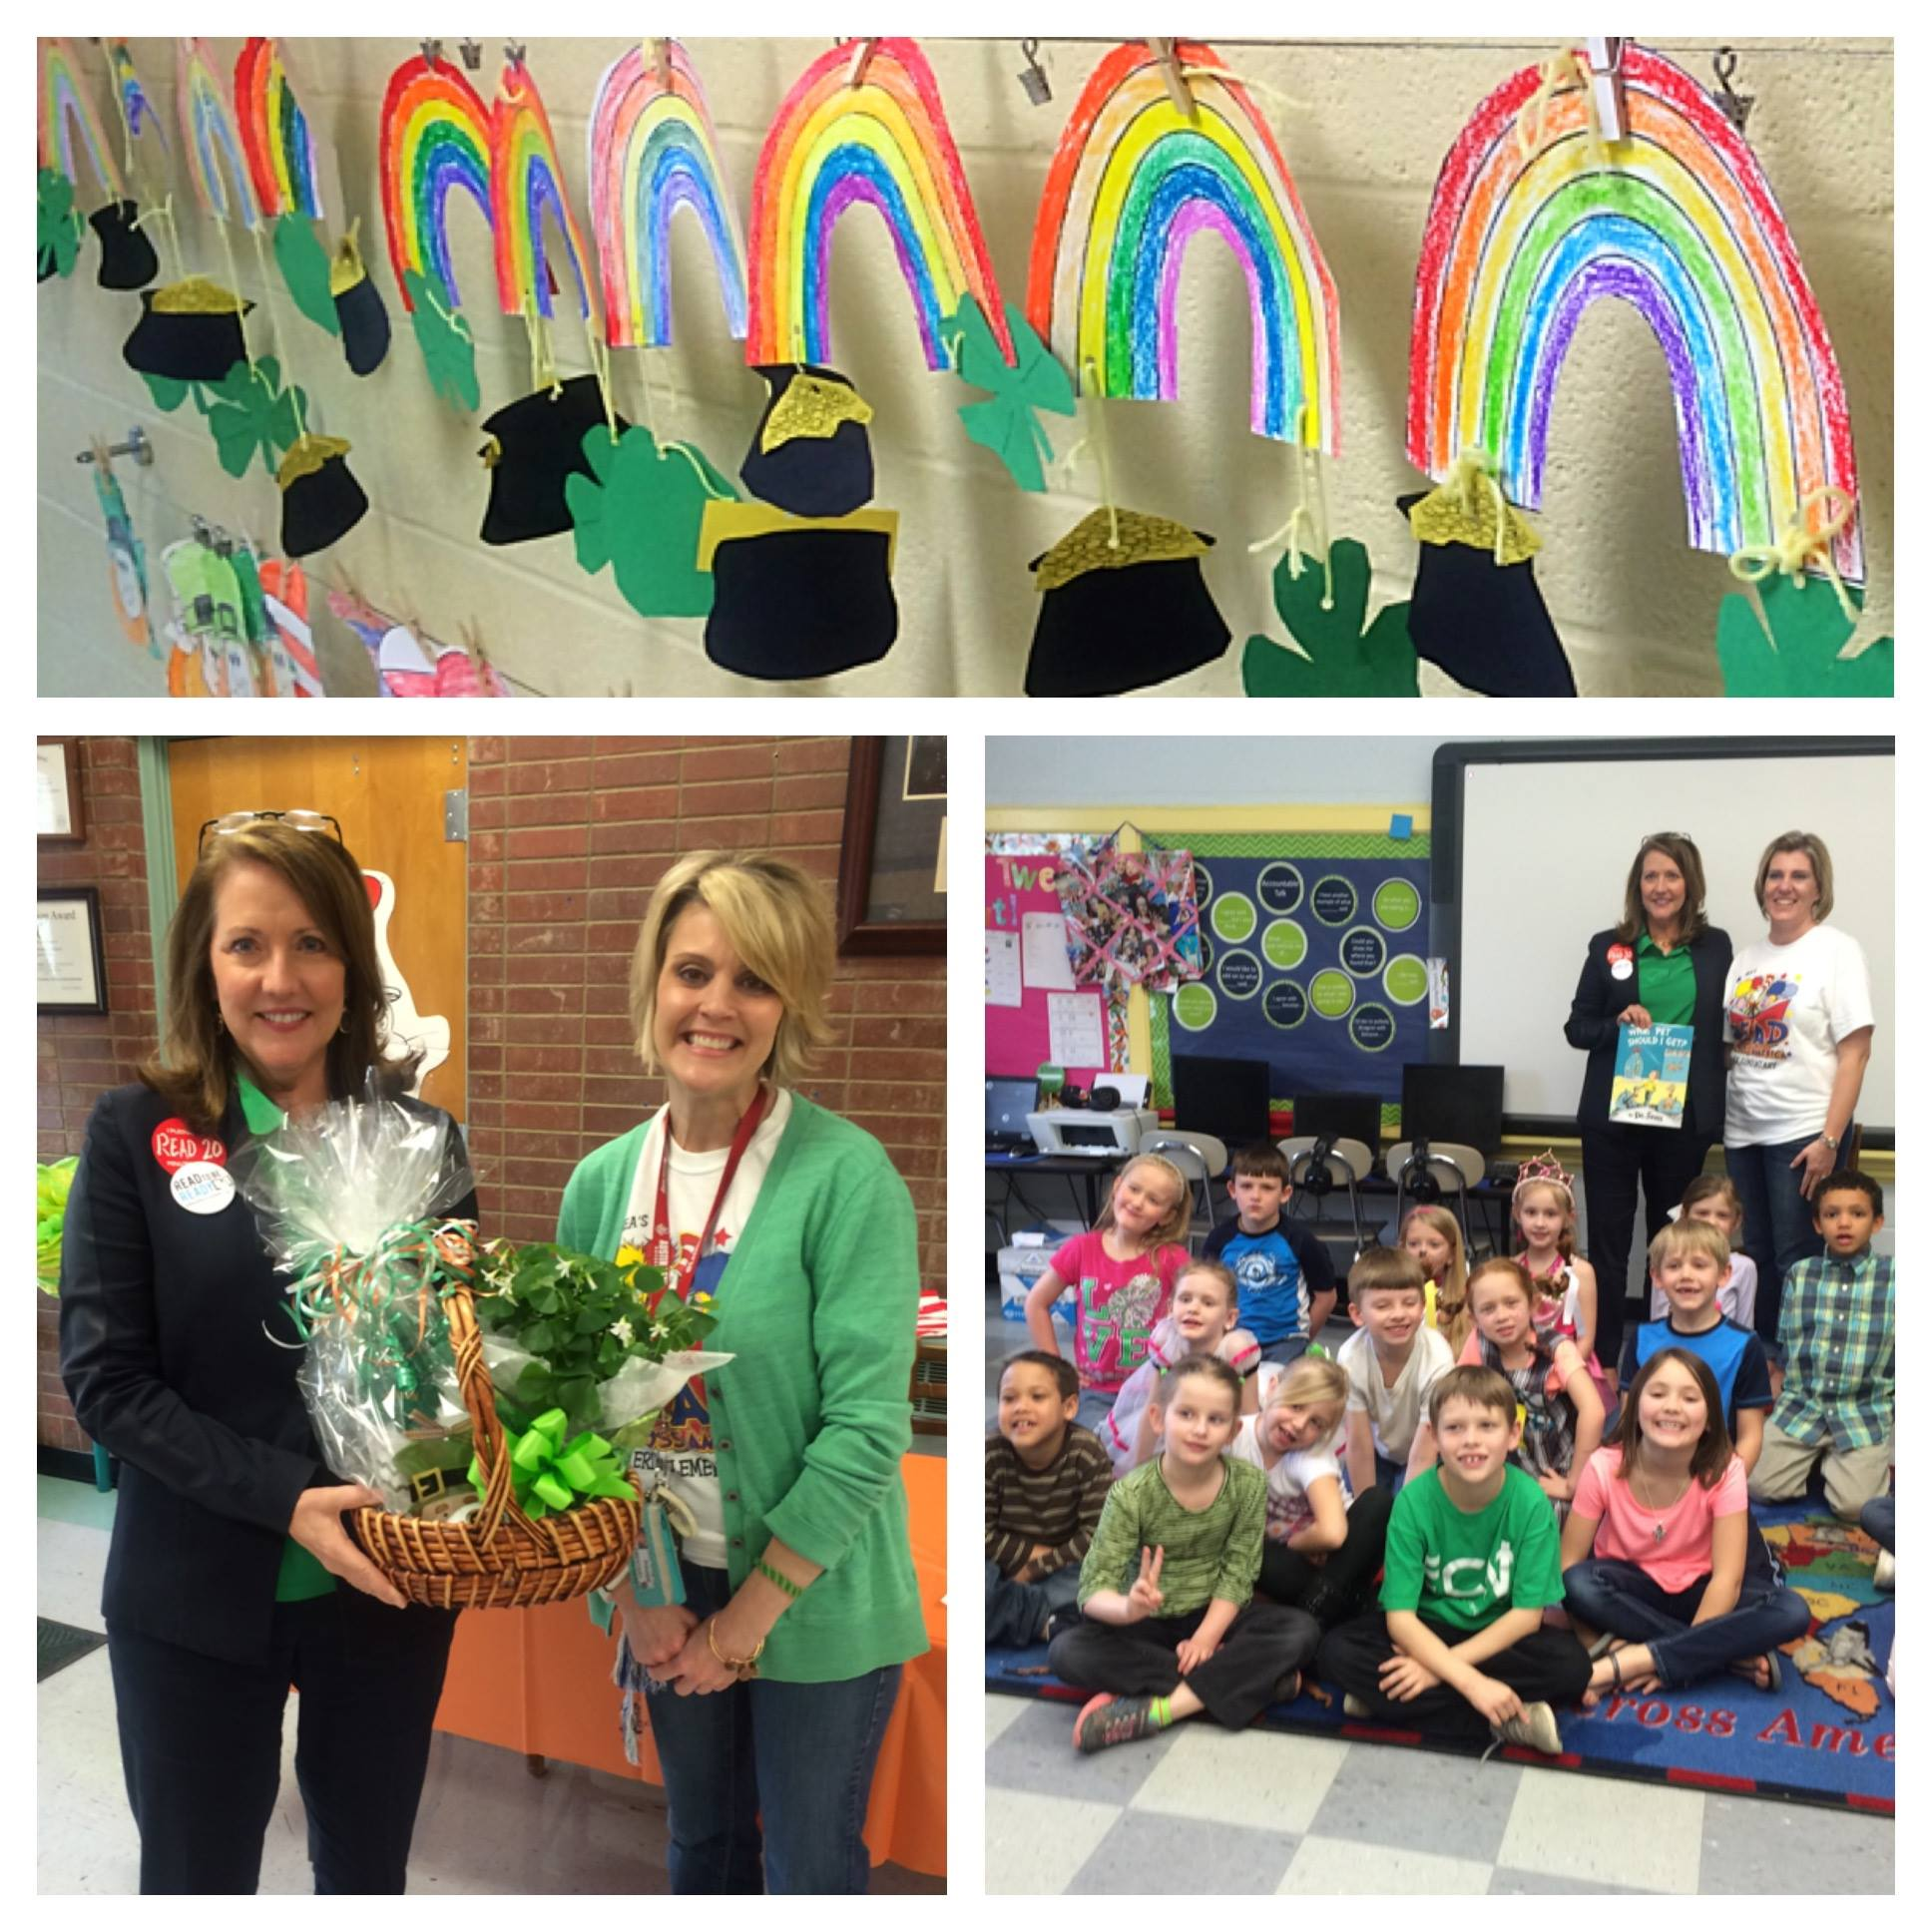 First Lady of Tennessee Visits Erin Elementary